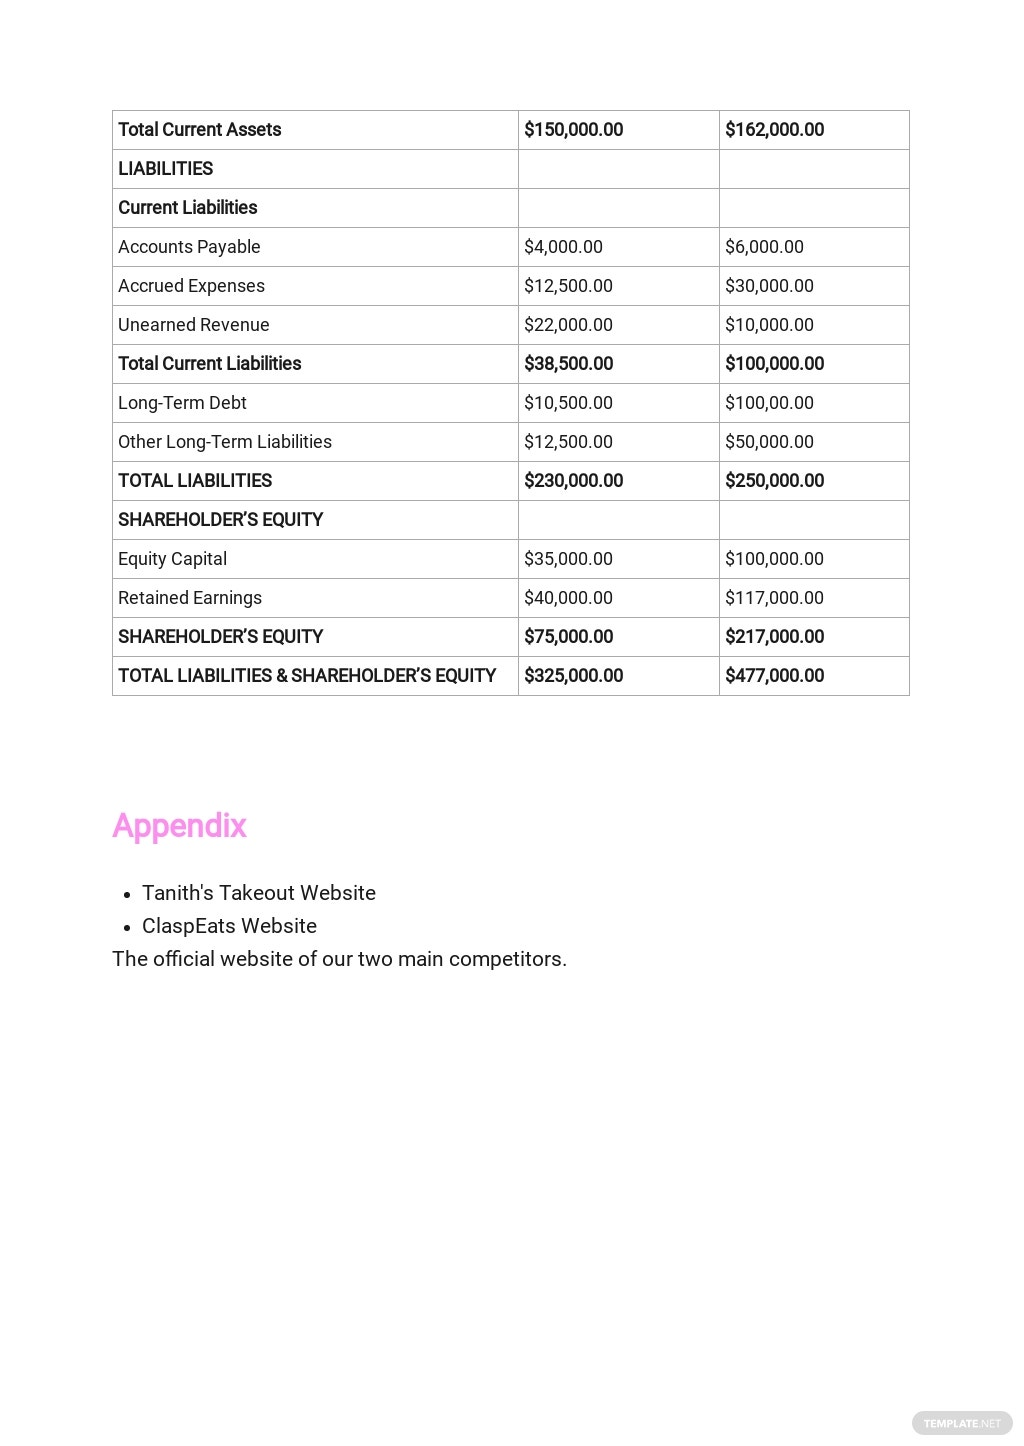 Food Delivery Business Plan Template 8.jpe